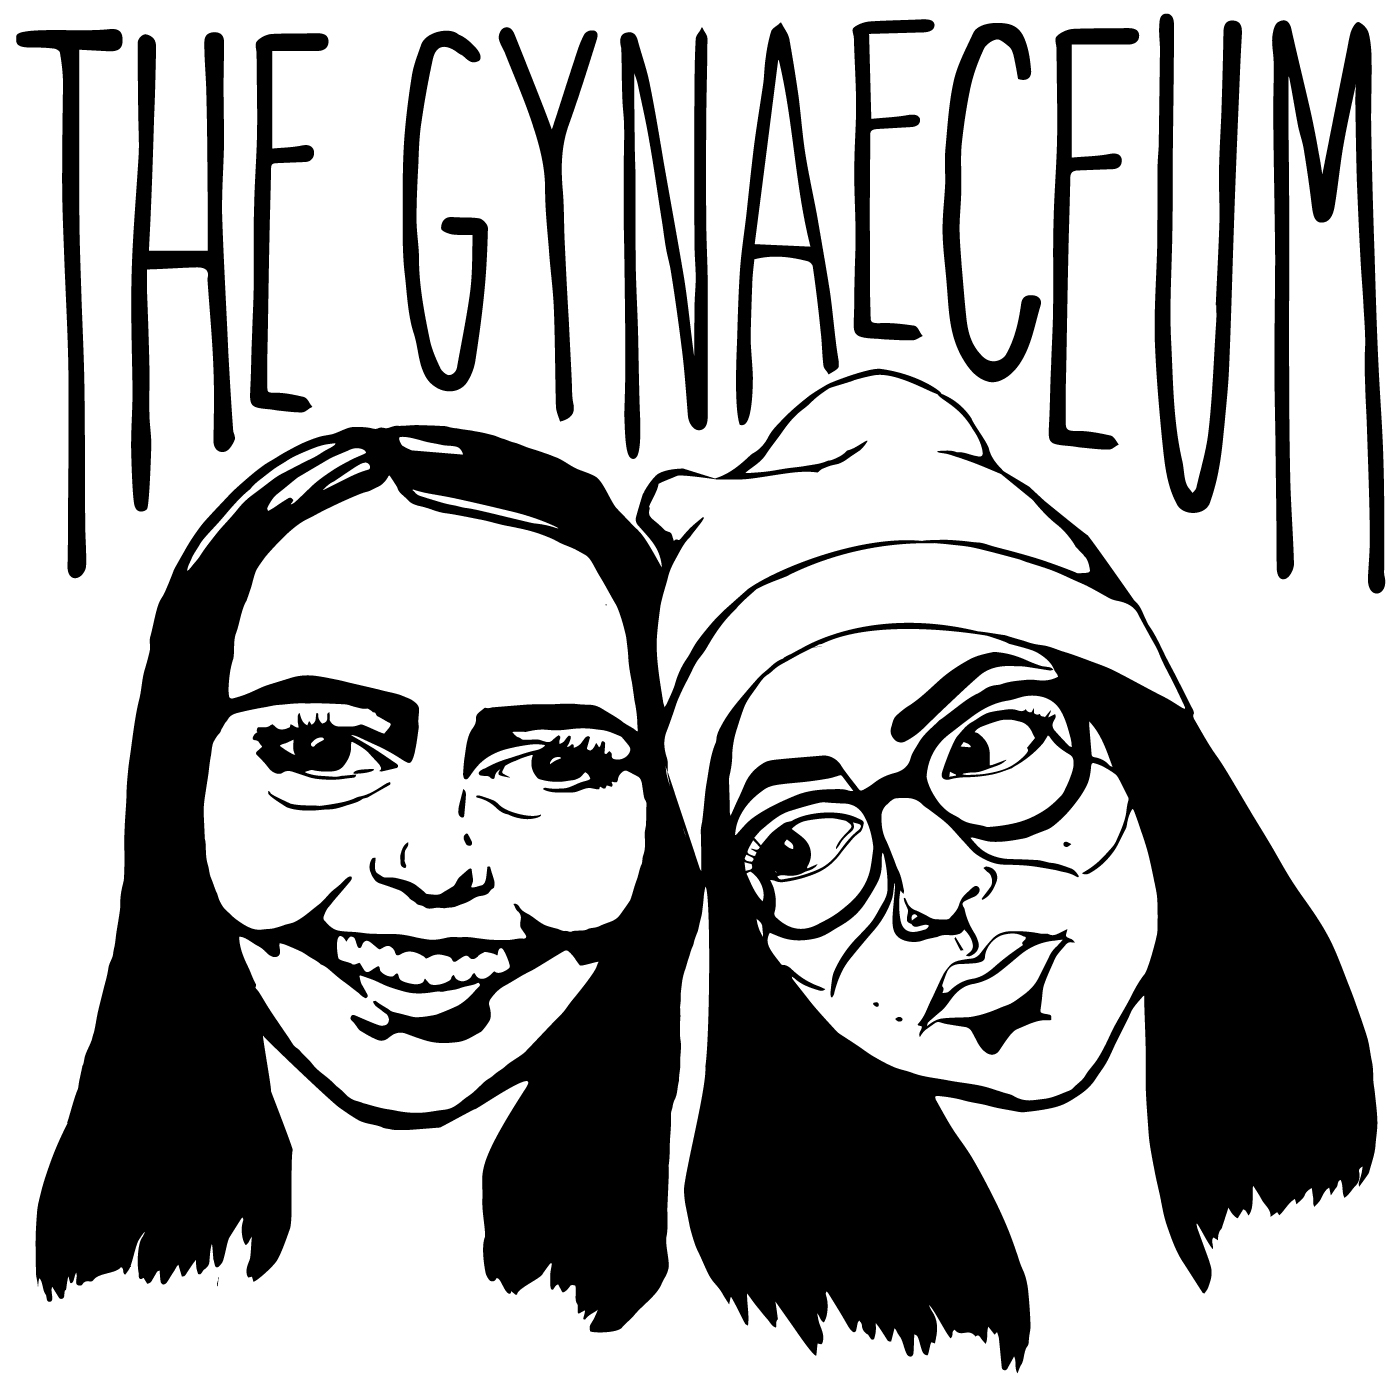 Melainie Rogers speaks about Body Image on The Gynaeceum Podcast